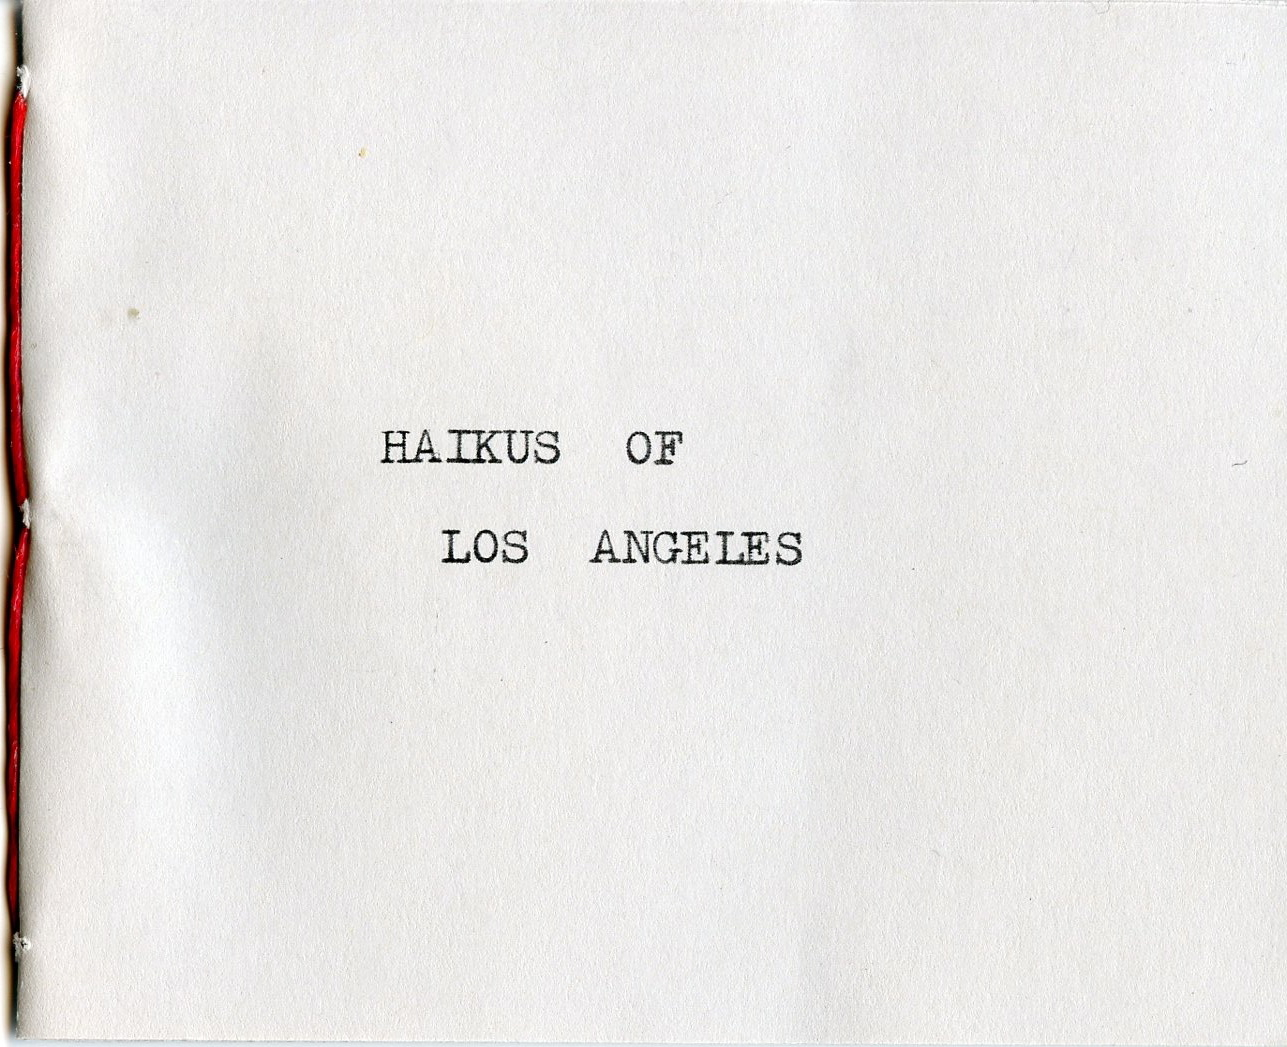 Haikus of Los Angeles